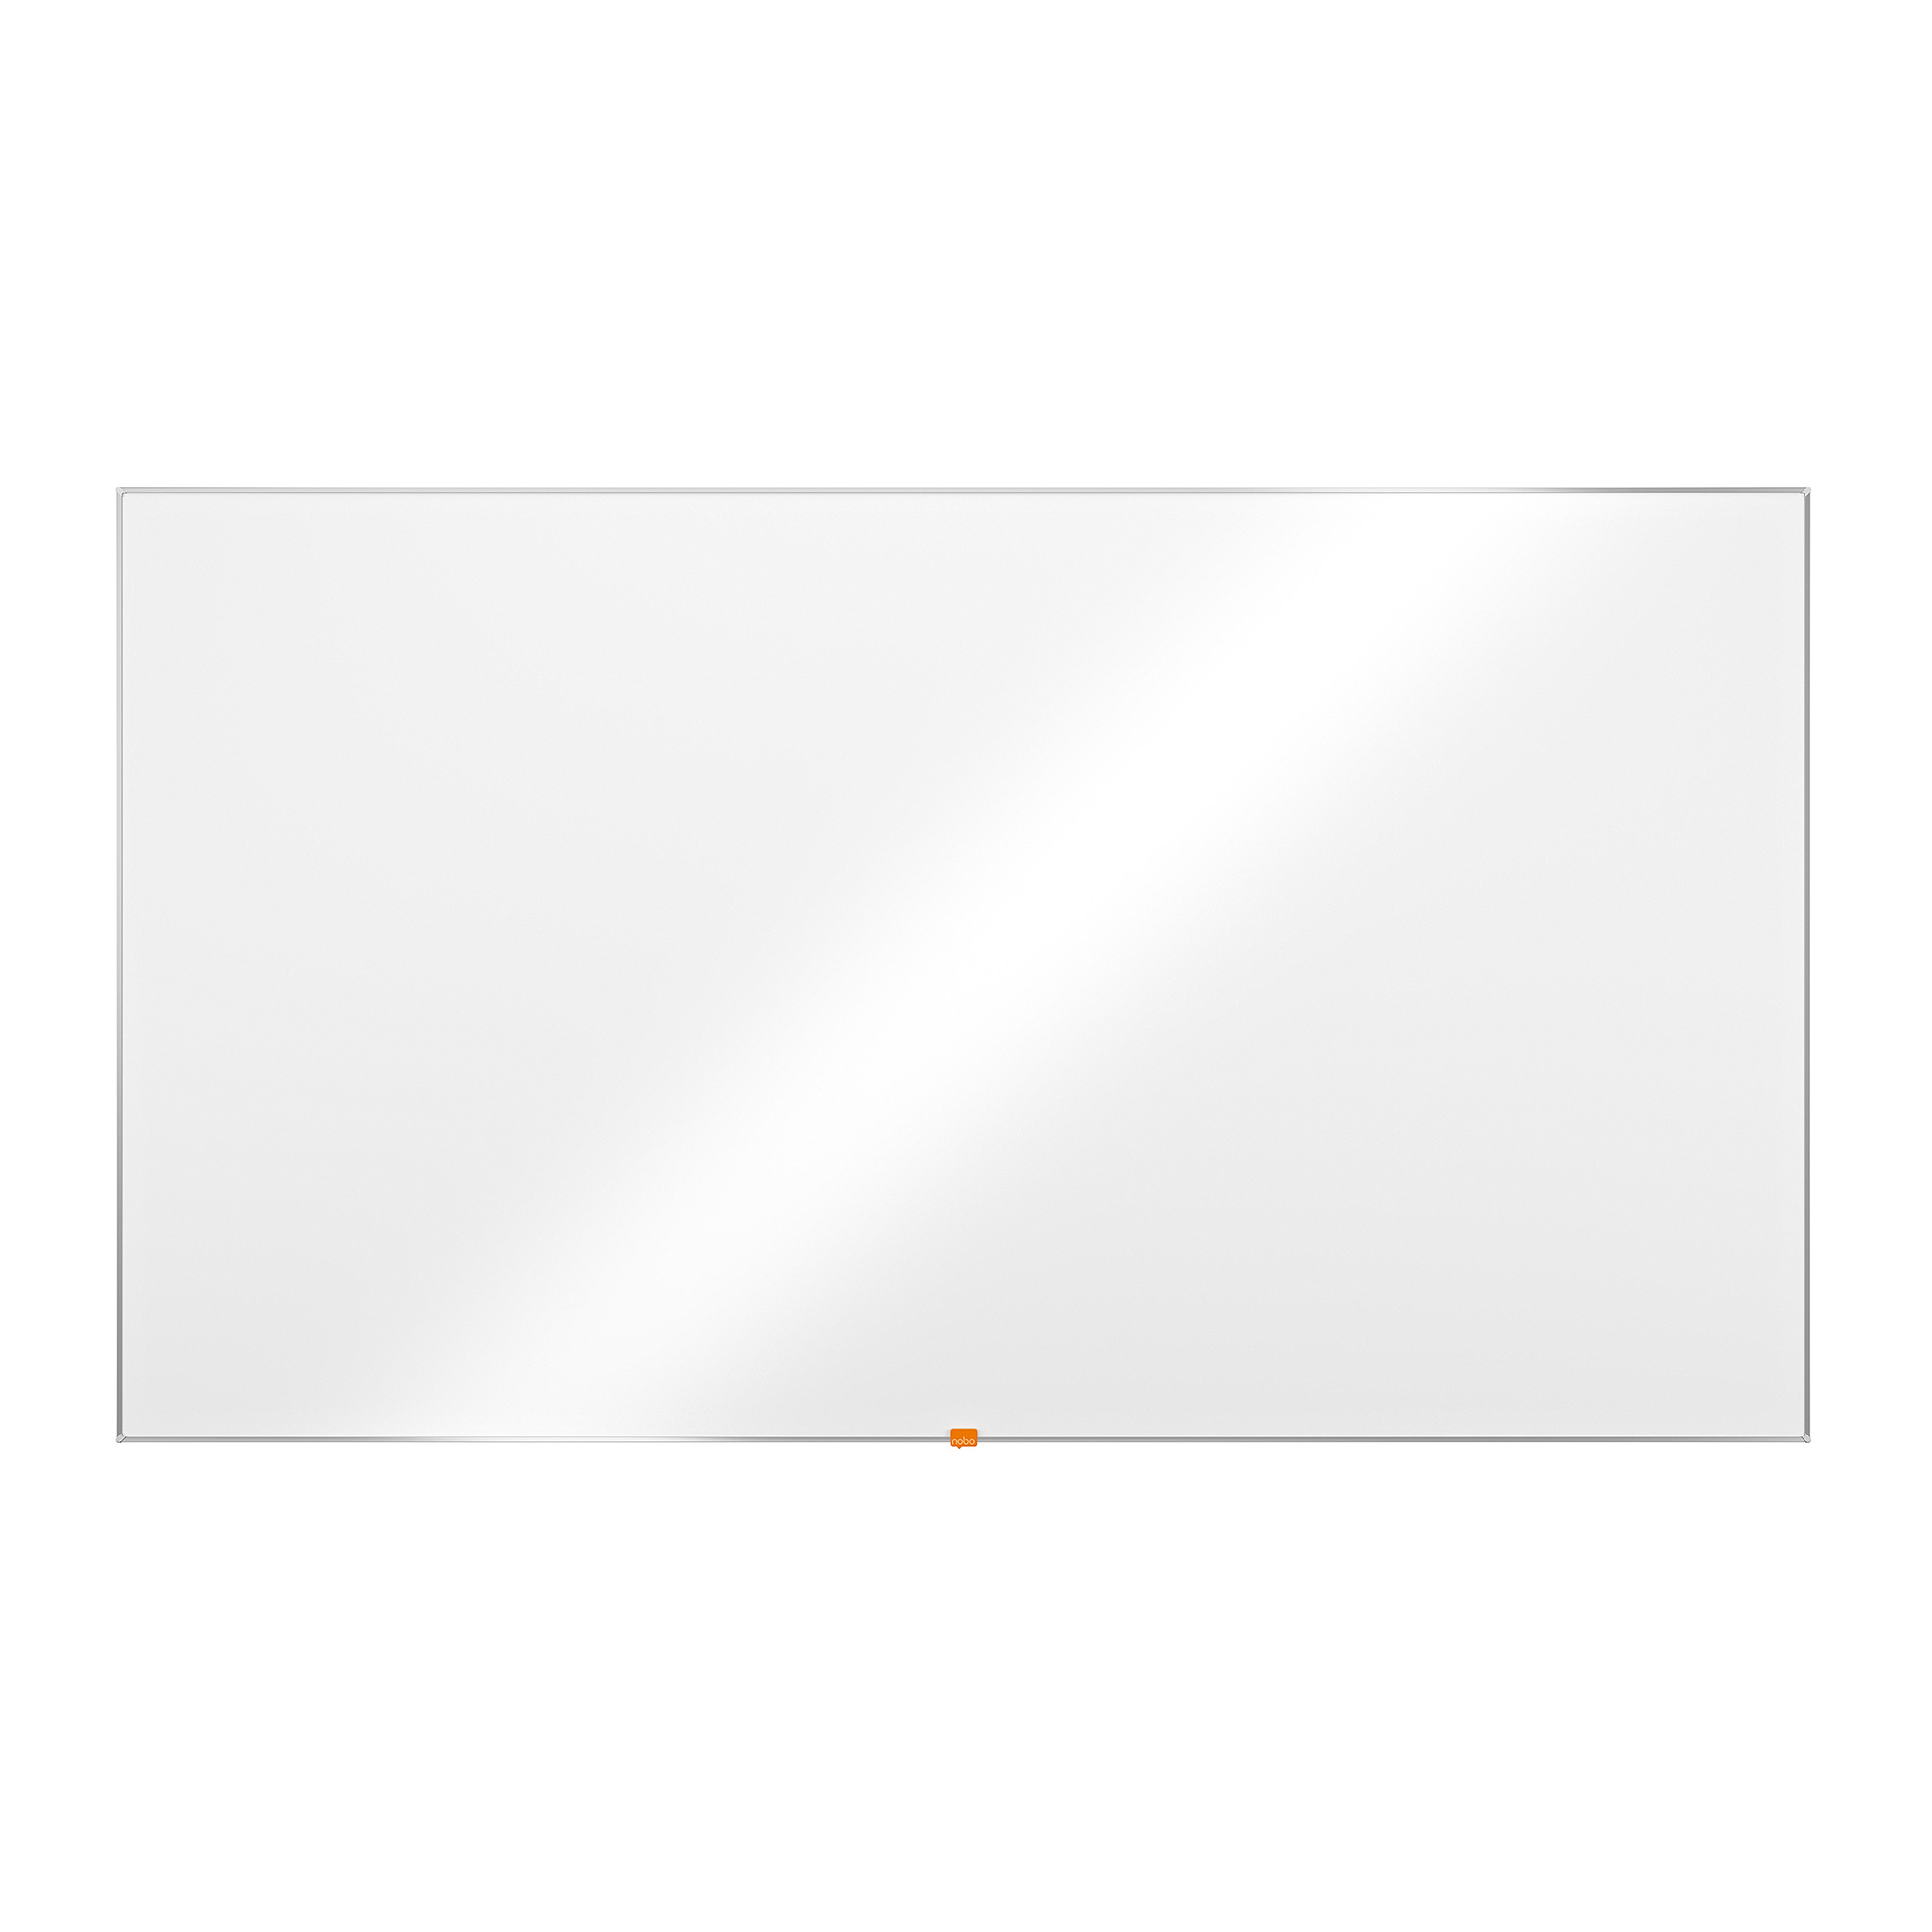 Dry erase boards or accessories Nobo Enamel Whiteboard Widescreen 85in Magnetic 1880x1060mm Ref 1905305